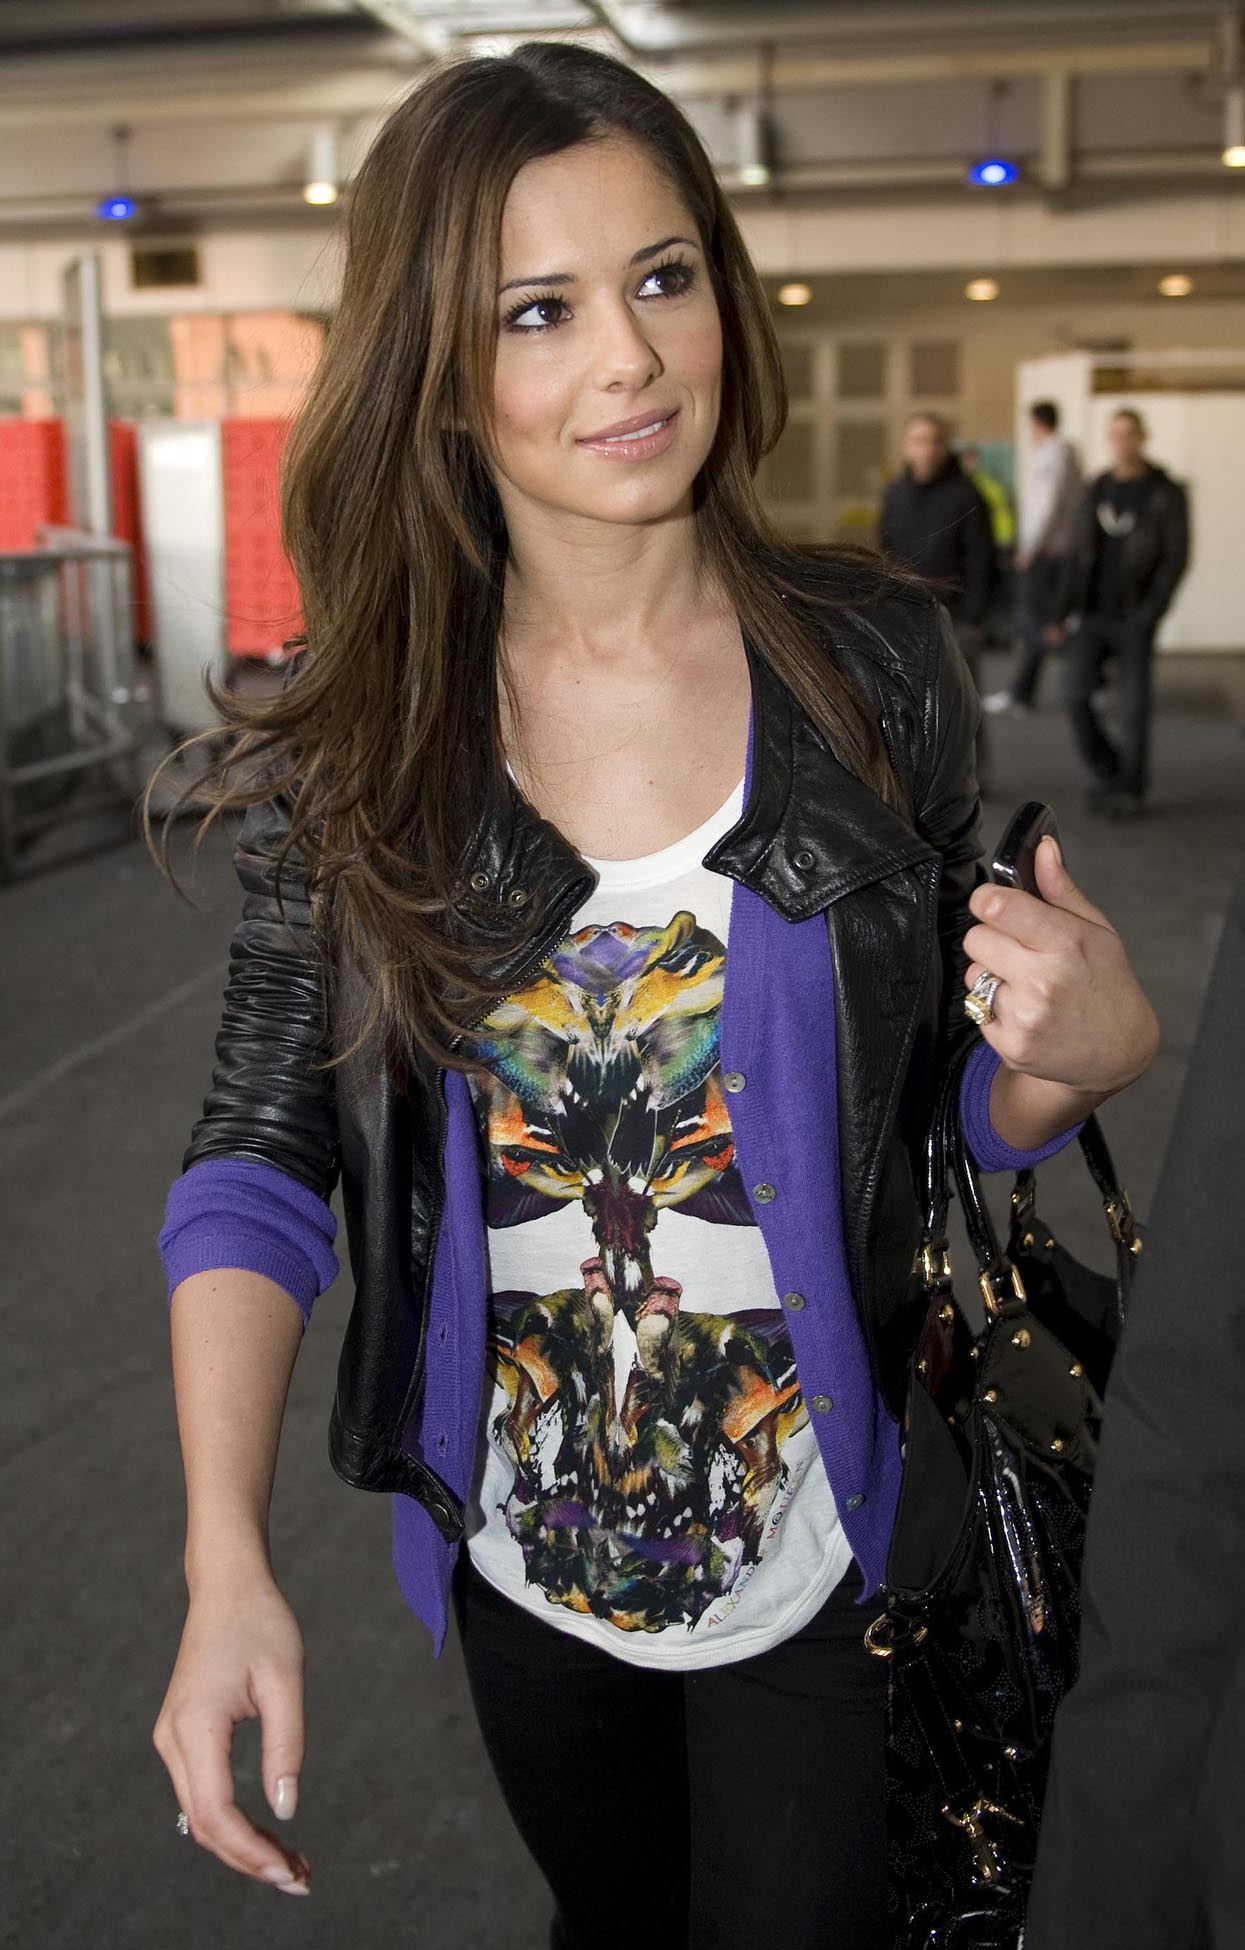 Cheryl Cole Arriving At Heathrow Airport (USA AND OZ ONLY)